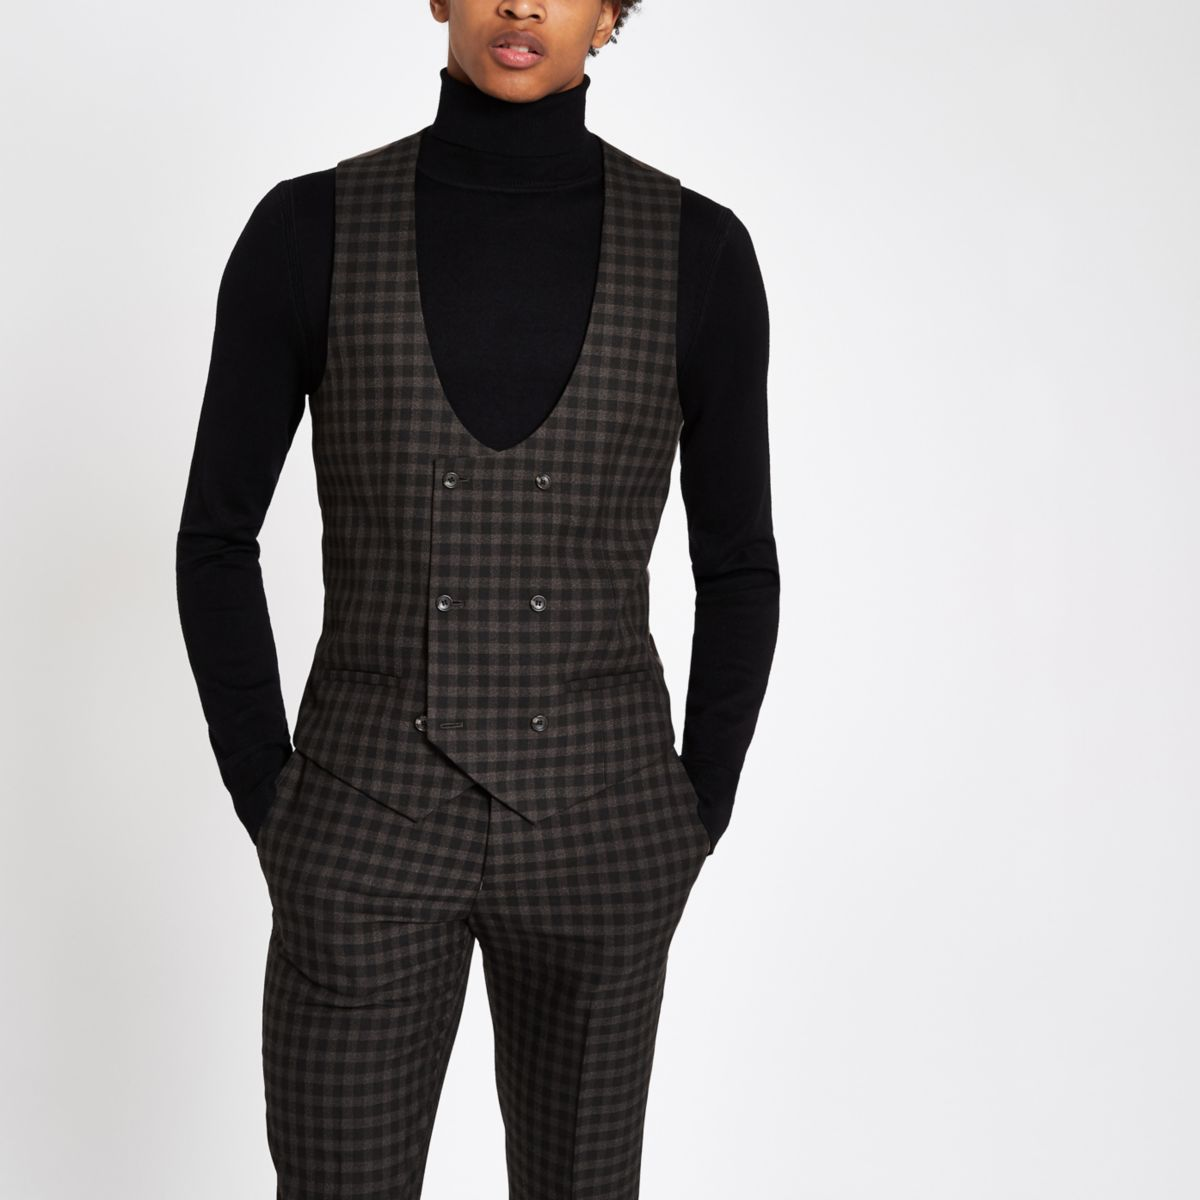 Brown check double-breasted suit vest